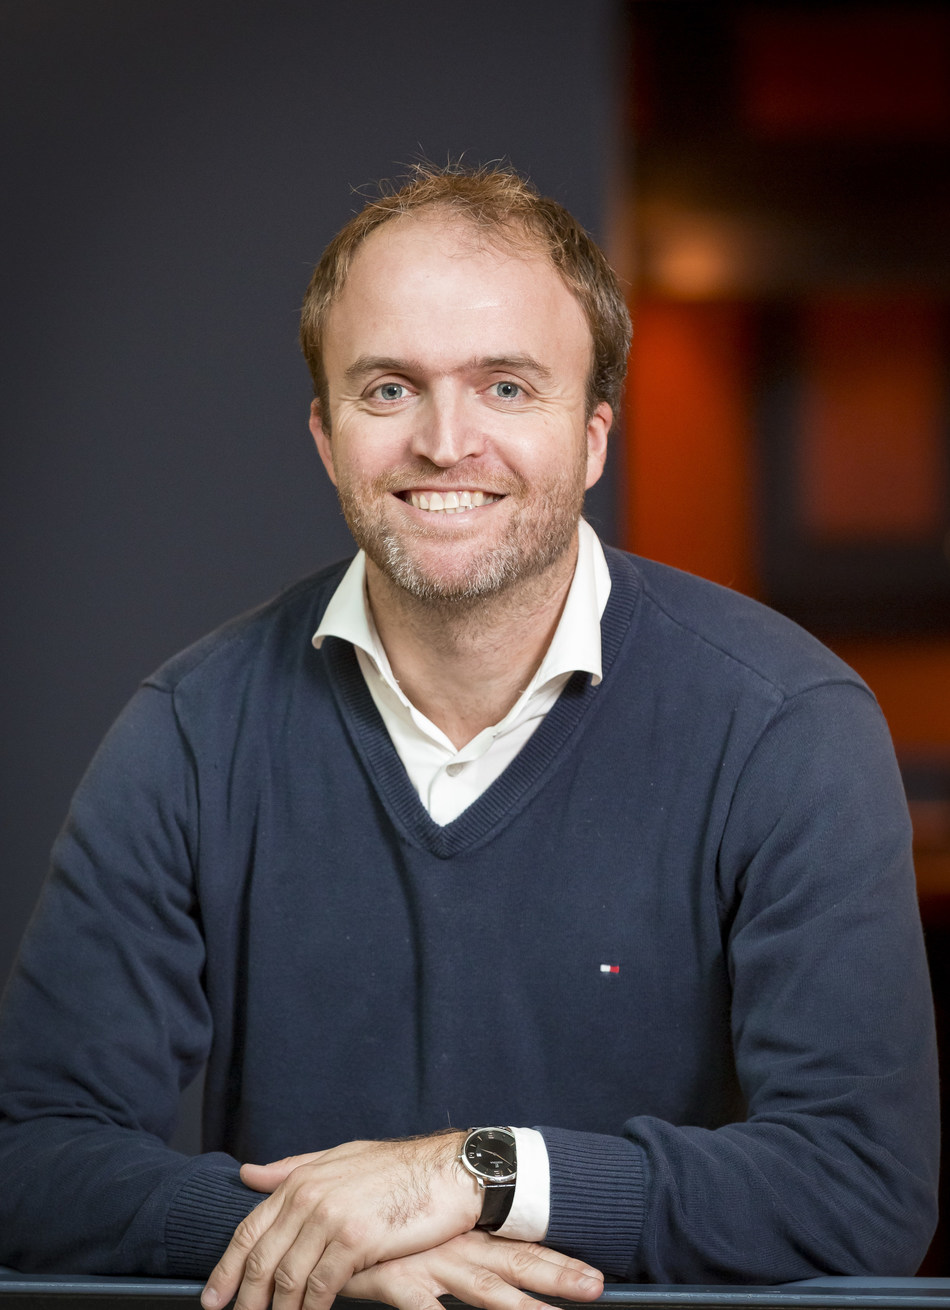 The professor David Pavot, chairholder of the Chair on Anti-Doping in Sport of the Université de Sherbrooke (CNW Group/Université de Sherbrooke)